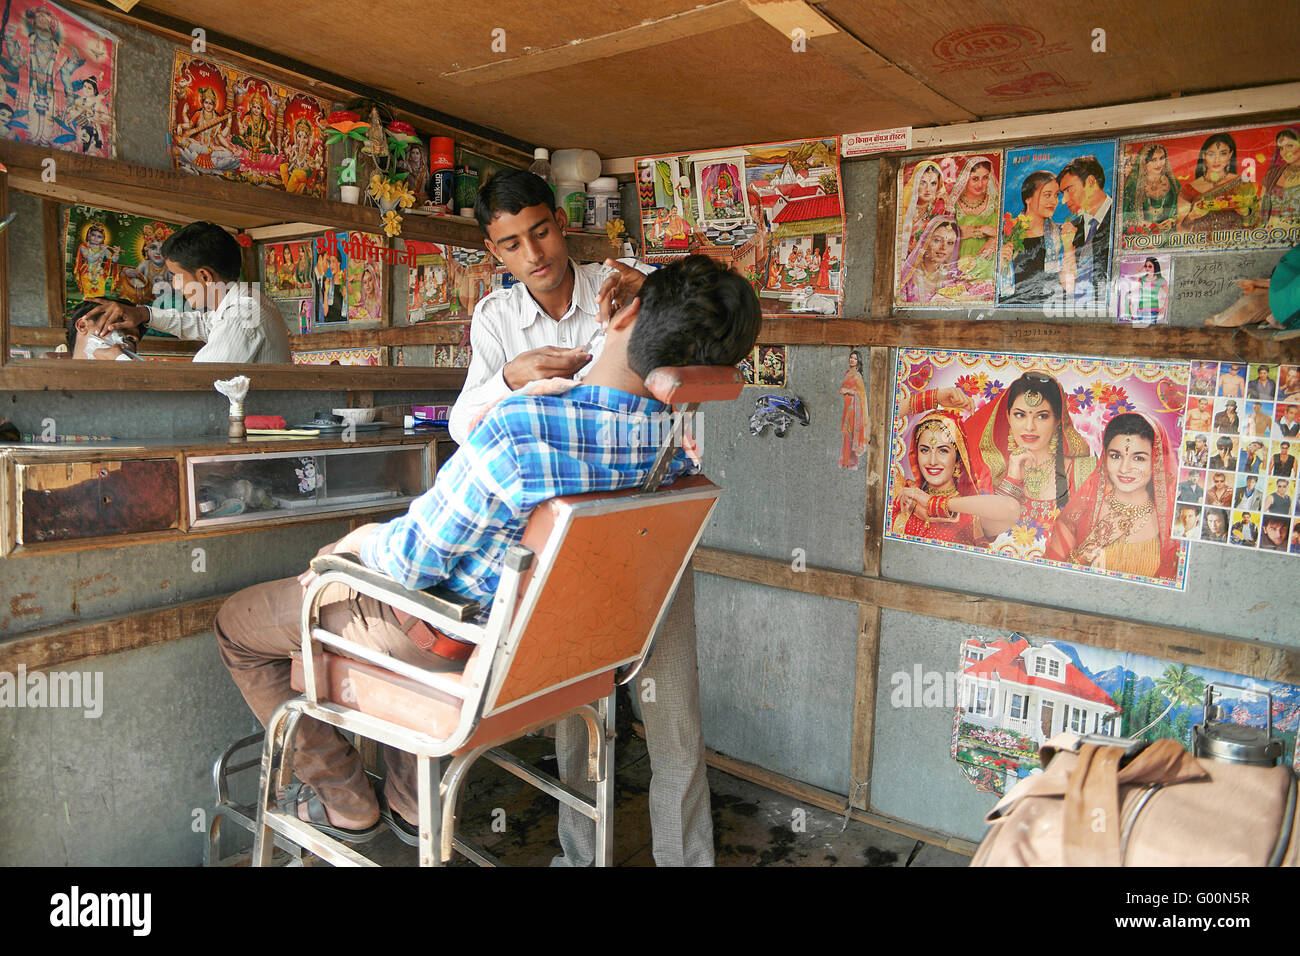 The barber shop in the street of Pushkar, India. Stock Photo